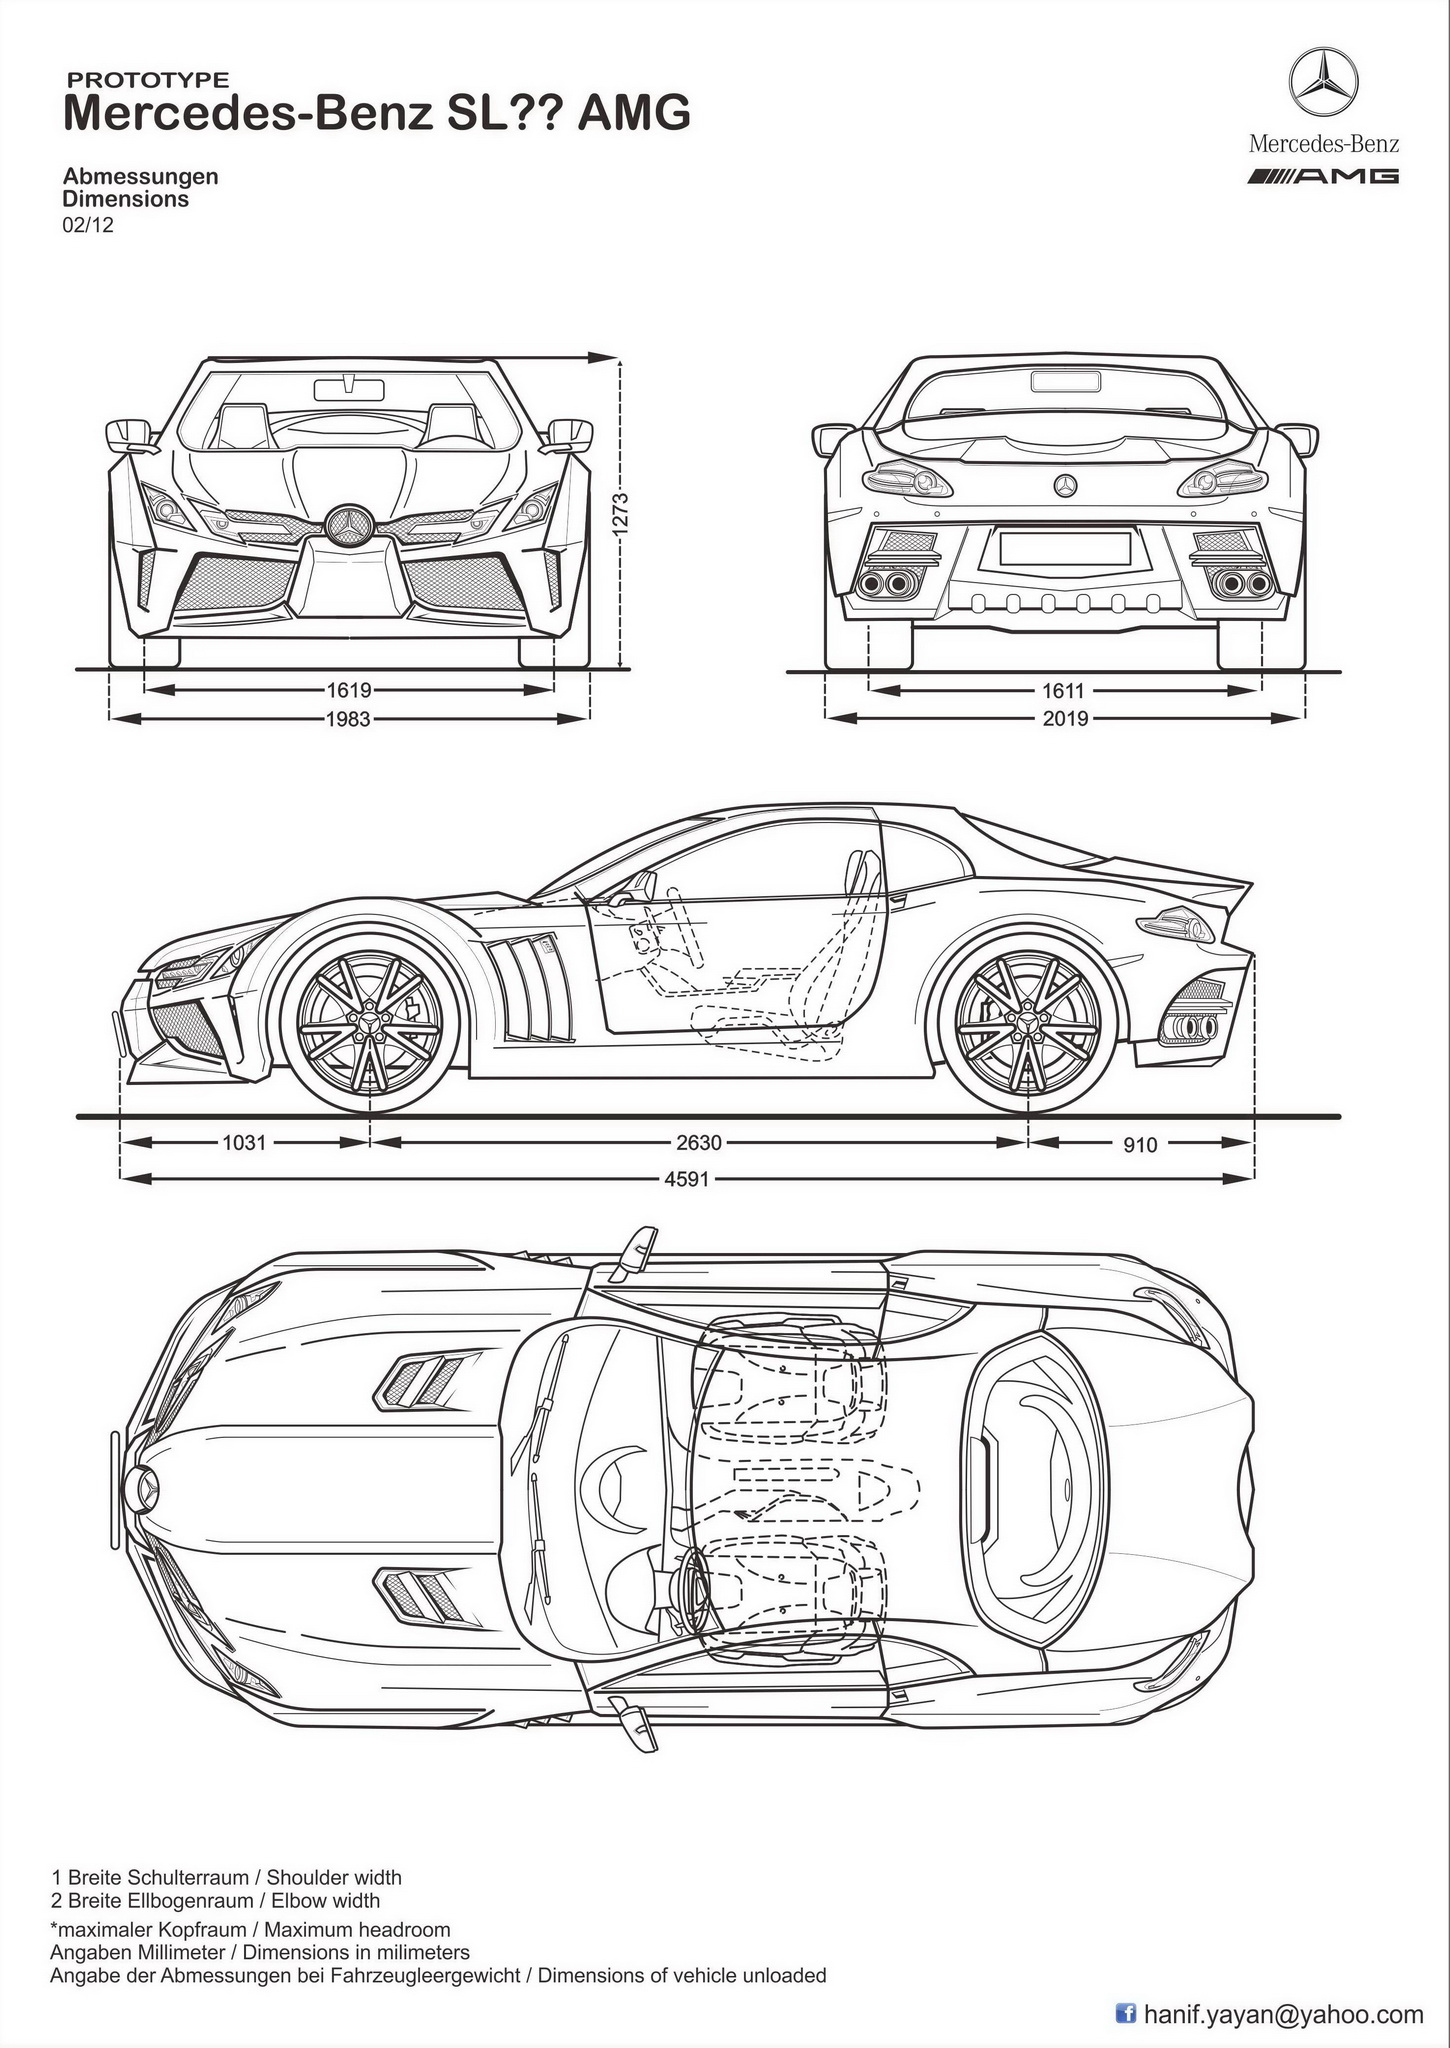 Mercedes Benz Sl Amg Concept Blueprints By Hanif Yayan On